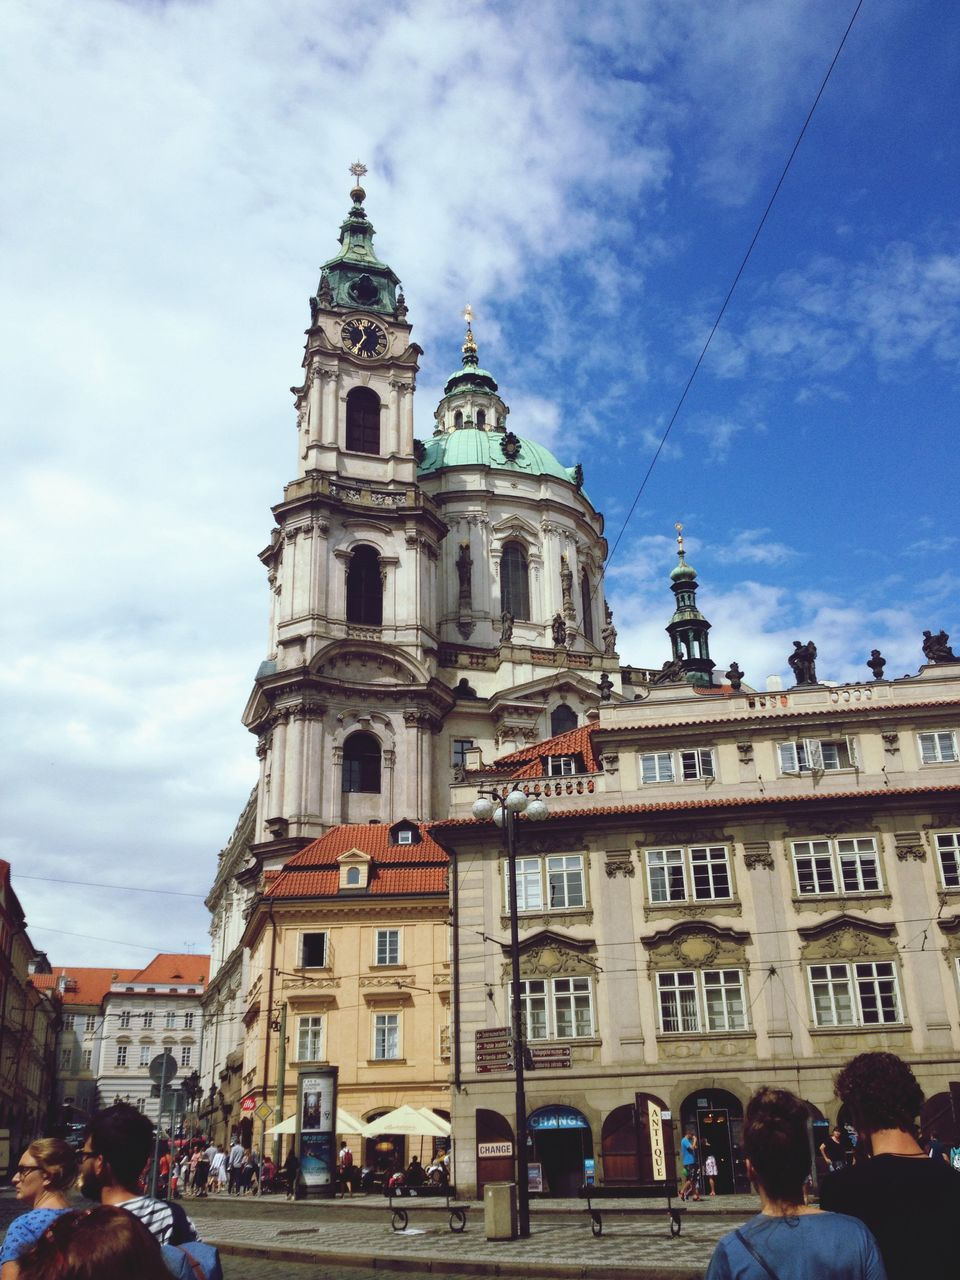 architecture, building exterior, built structure, religion, cloud - sky, sky, place of worship, spirituality, day, outdoors, travel destinations, large group of people, real people, city, baroque style, people